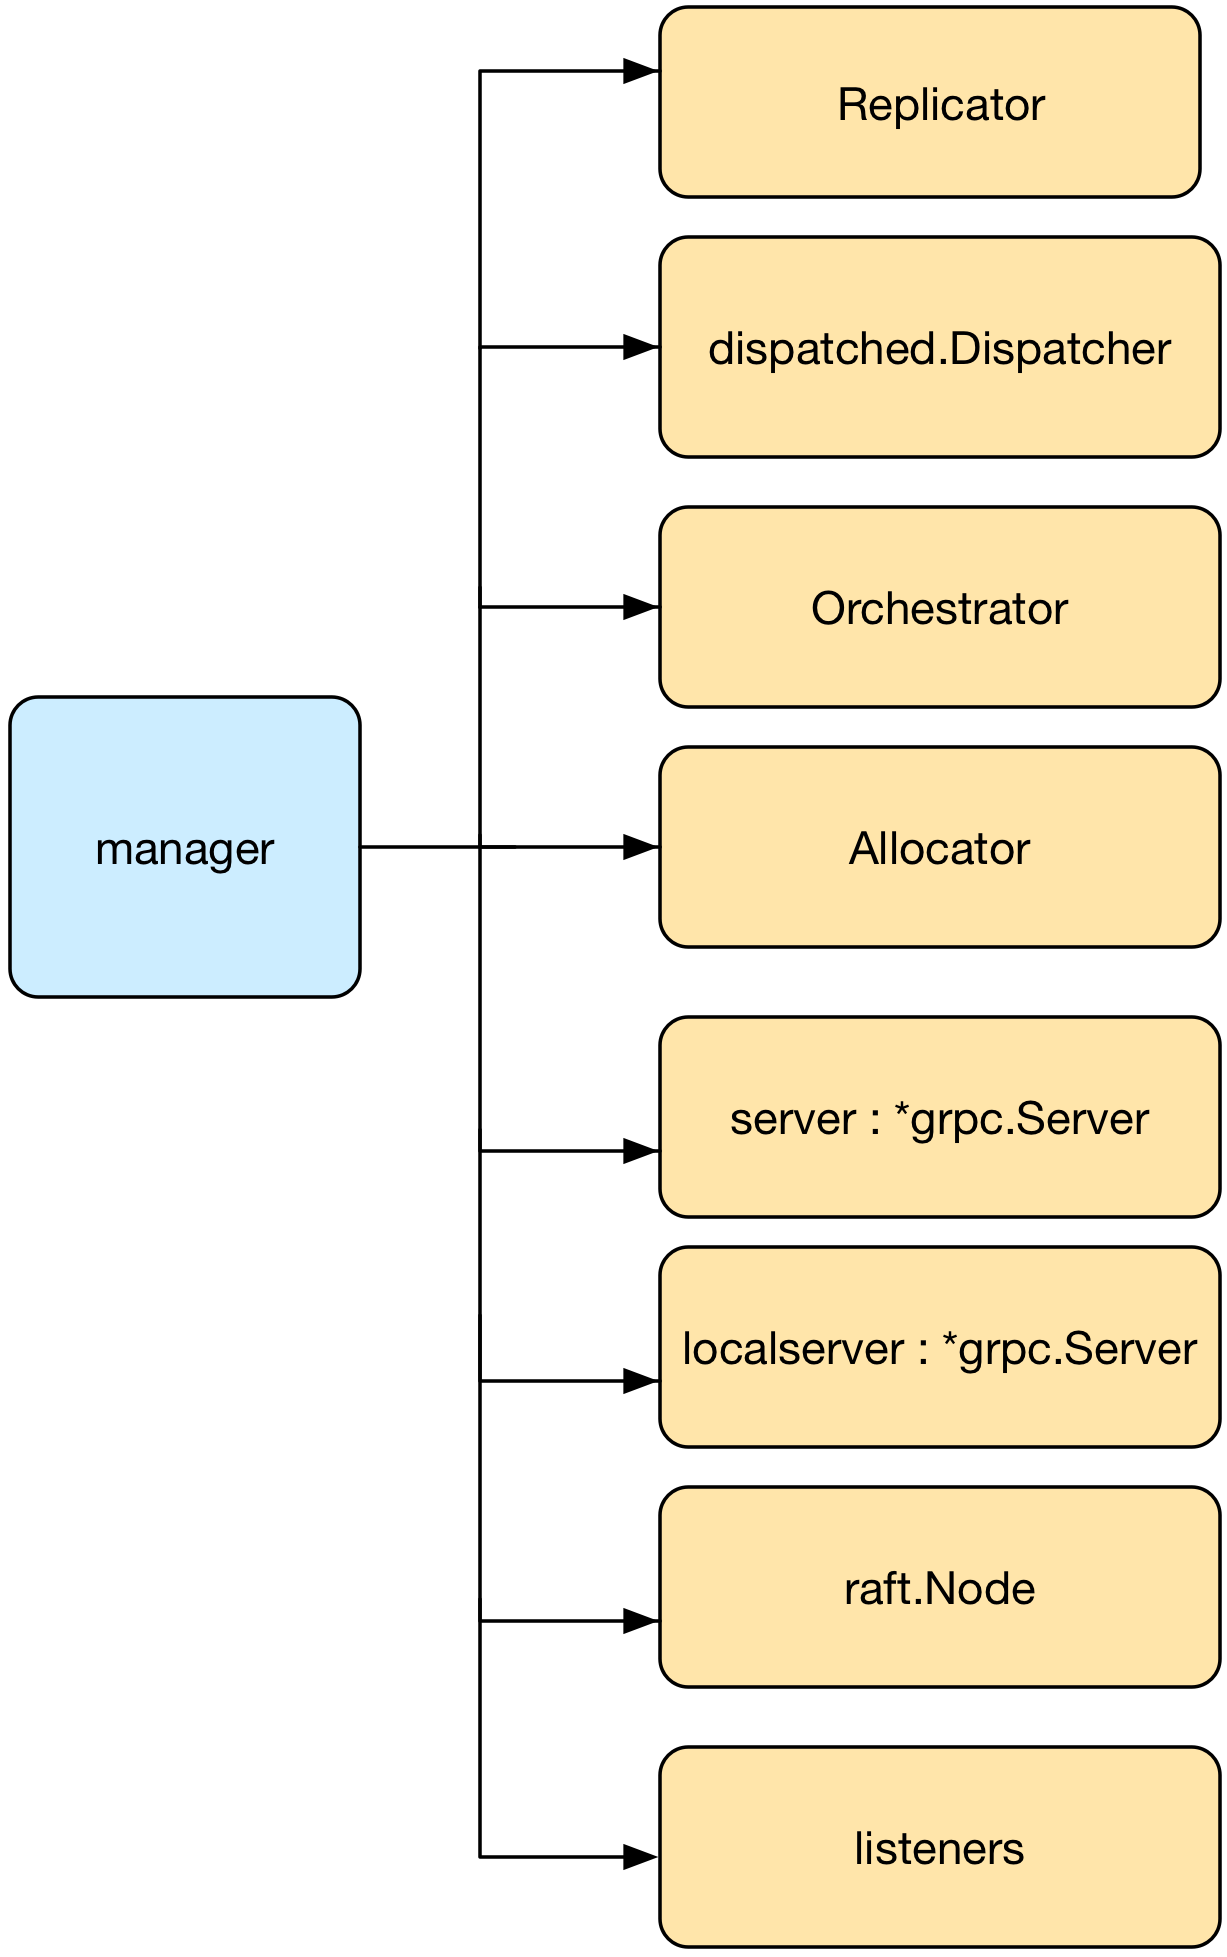 ../_images/swarmkit-diagram-manager.png